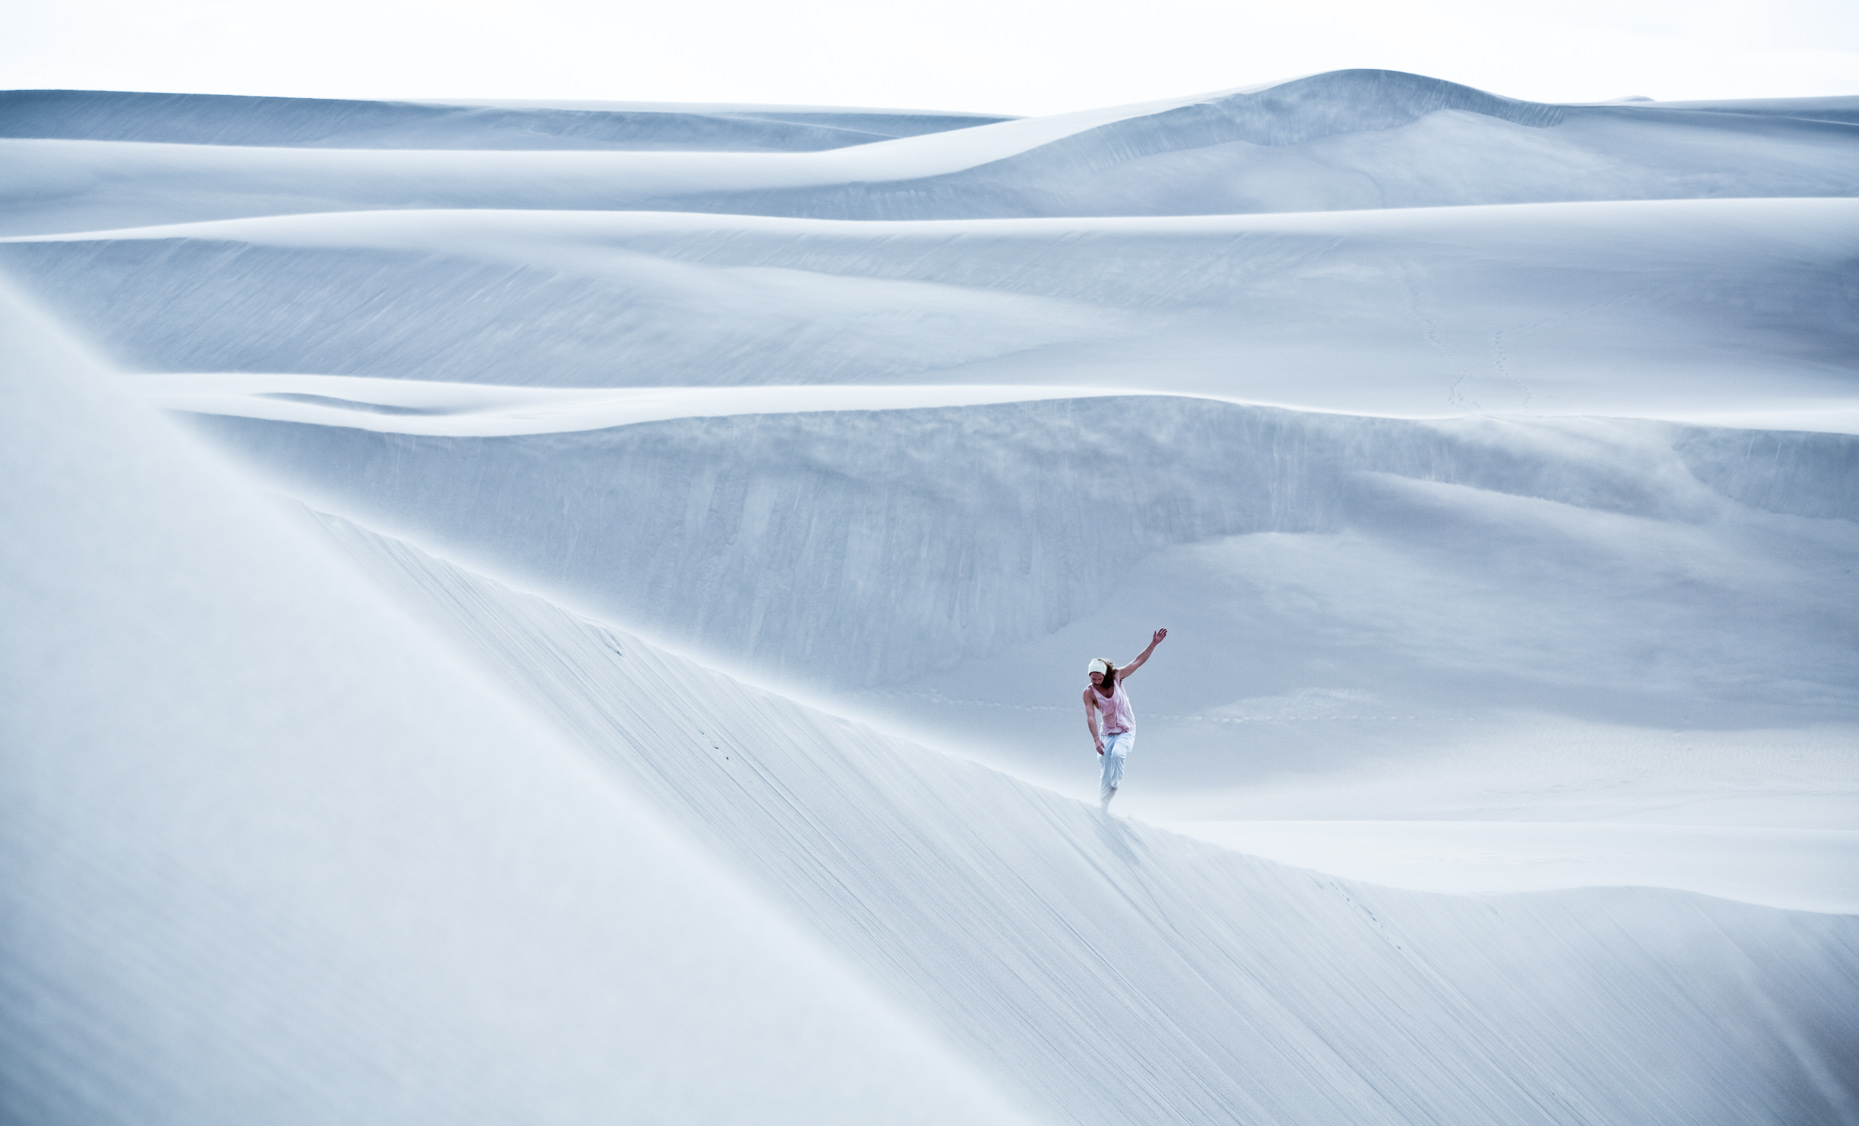 Adventure and outdoor lifestyle photogaph by Forest Woodward self portrait in Great Sand dunes national Park Colorado